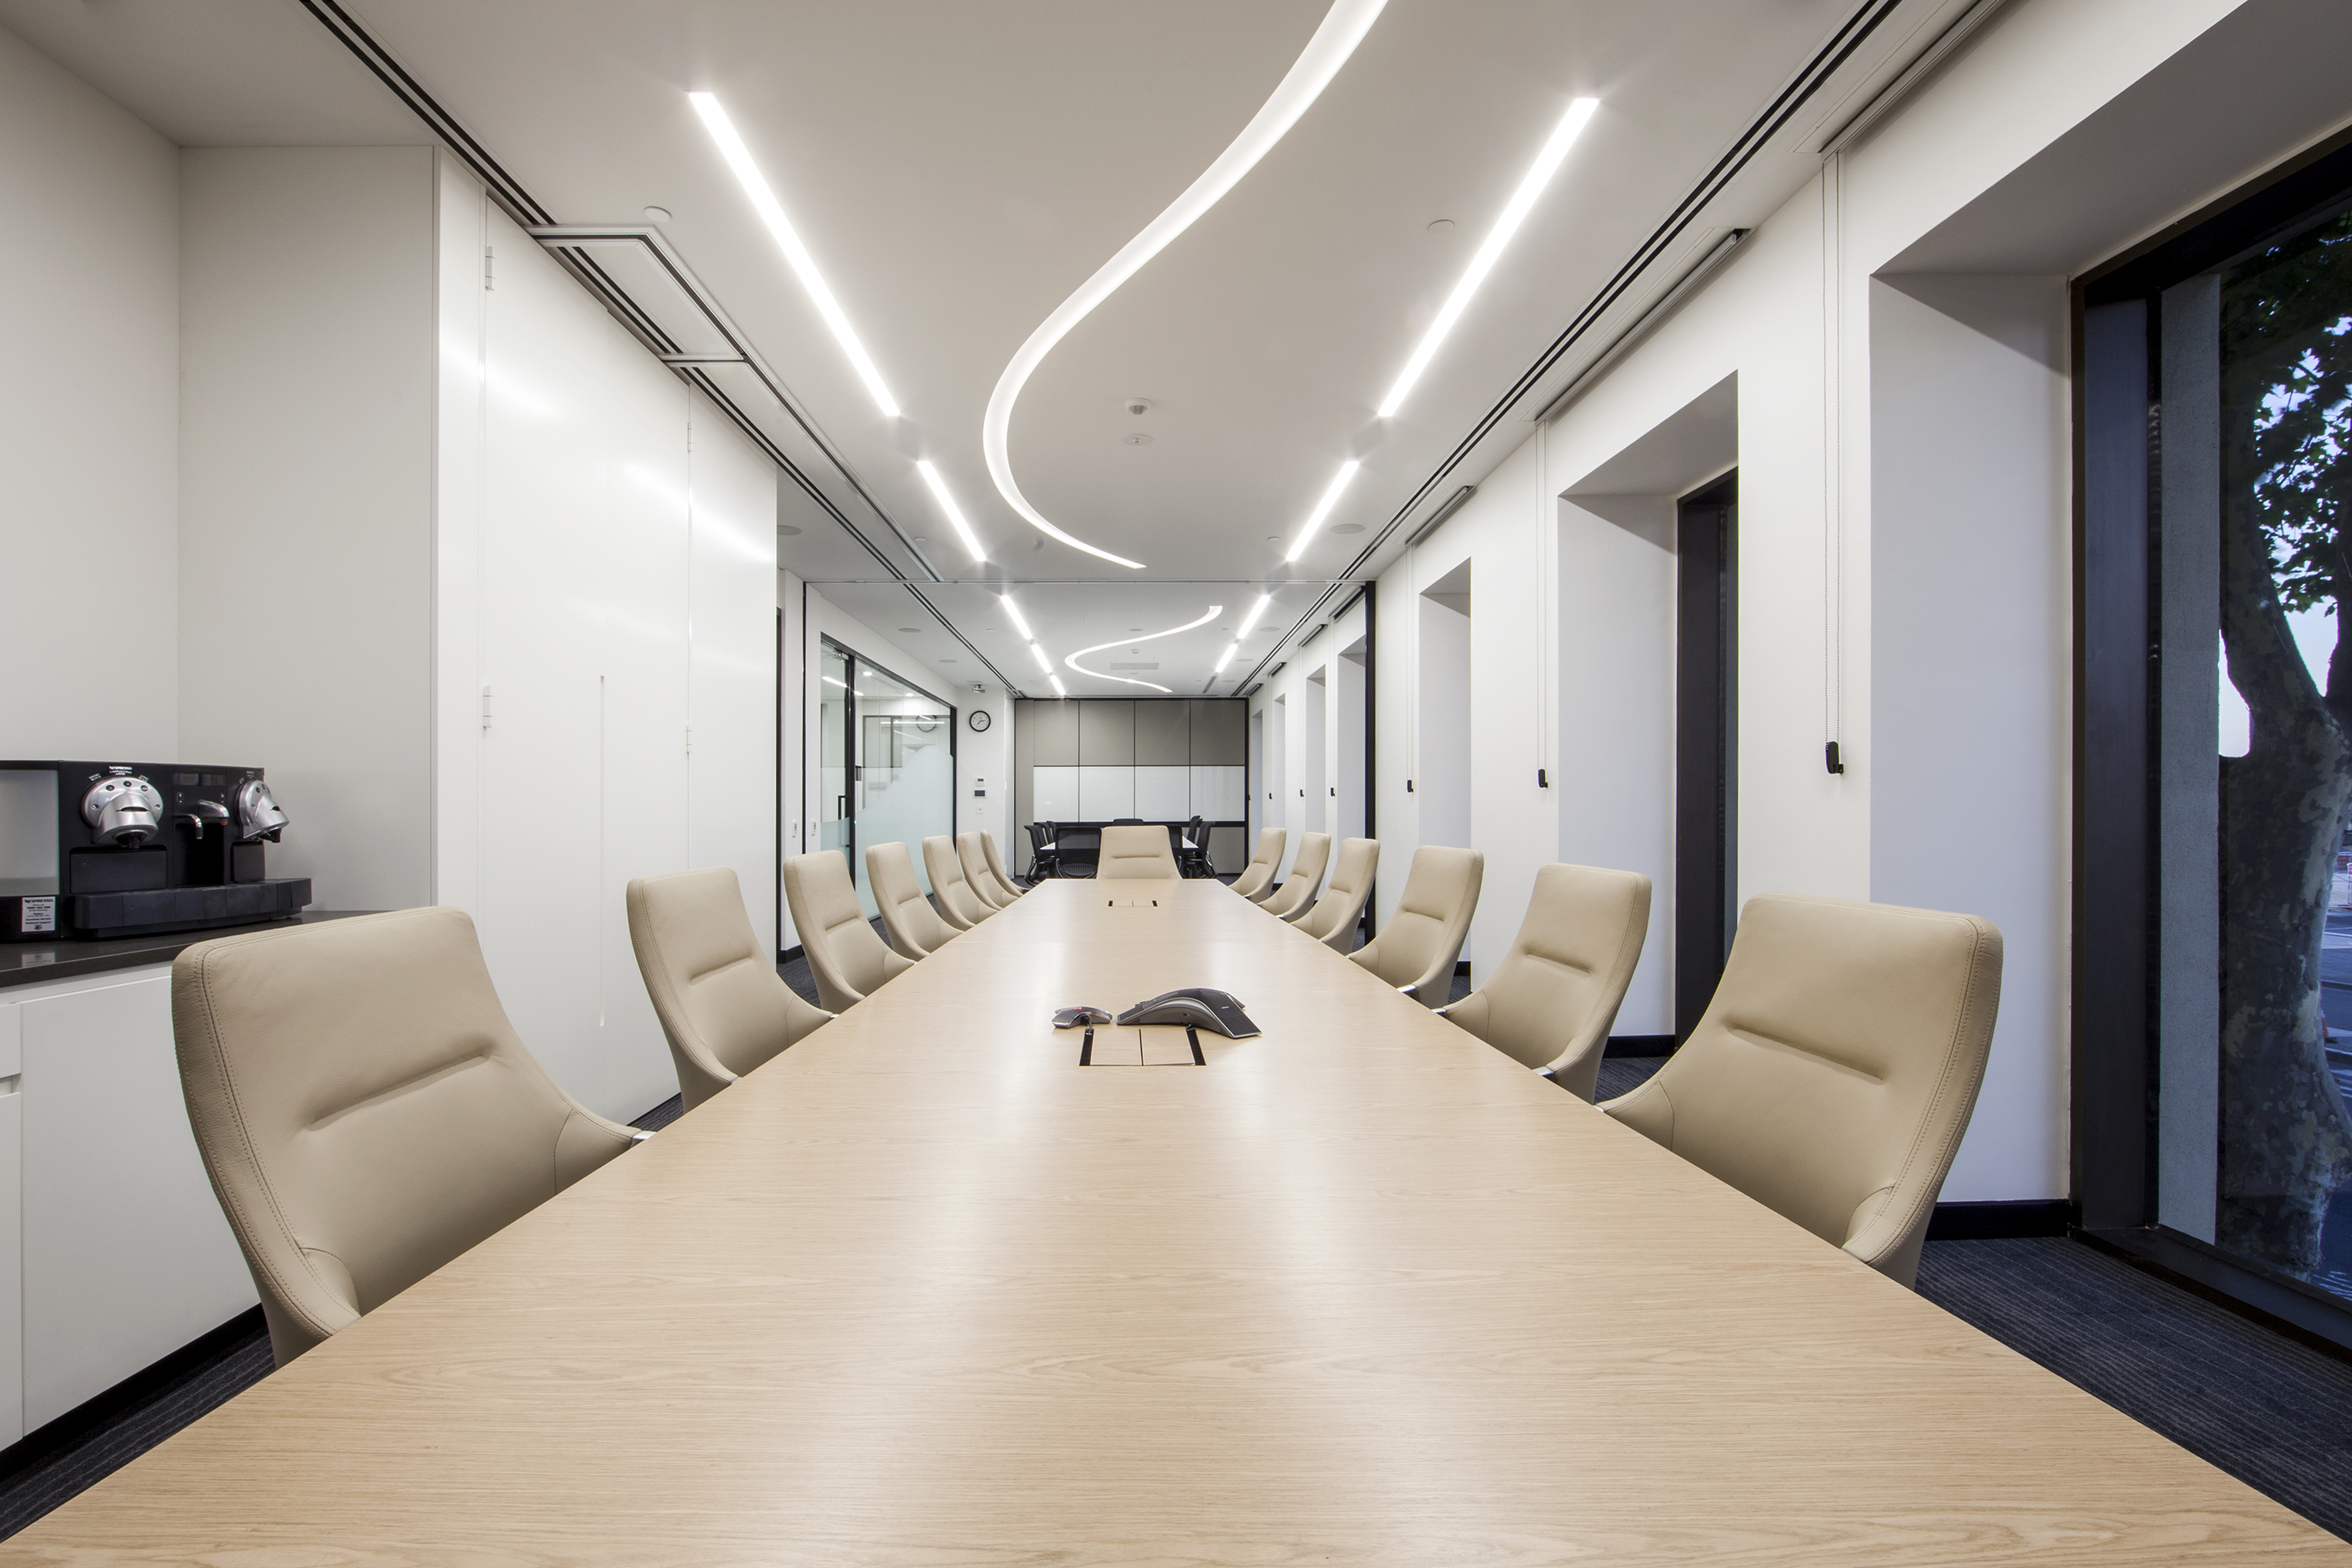 Narrow conference room - space saving